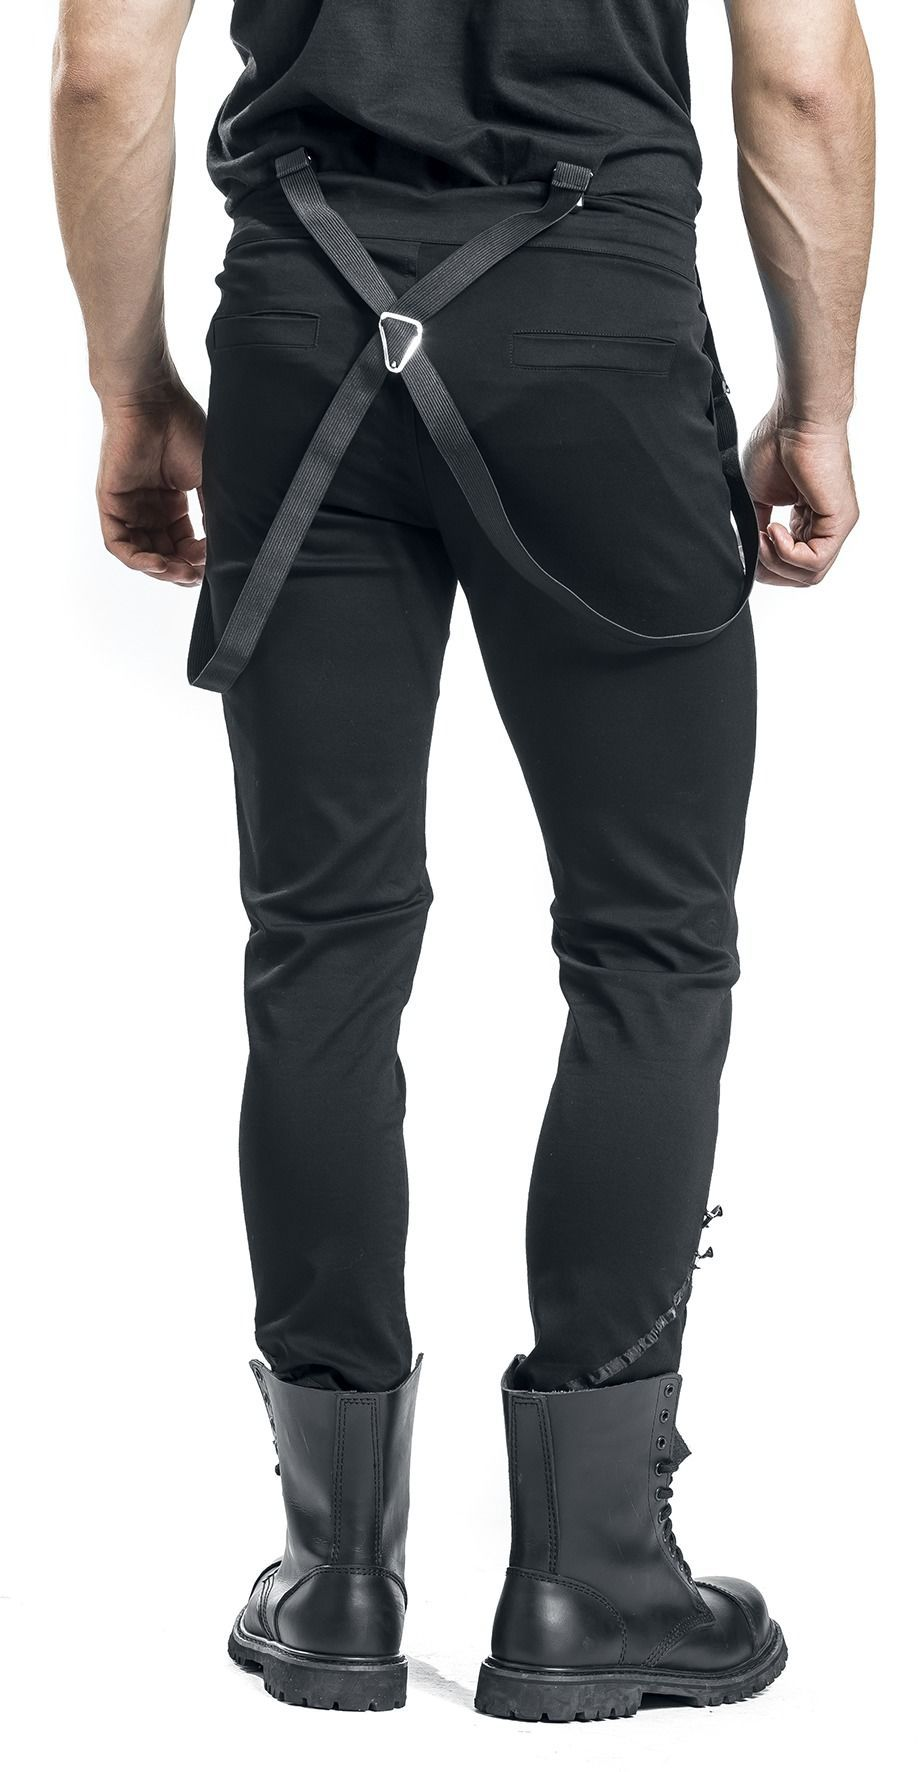 d3fc89510e5bd8 Military Drummer Trousers Gothic Rock